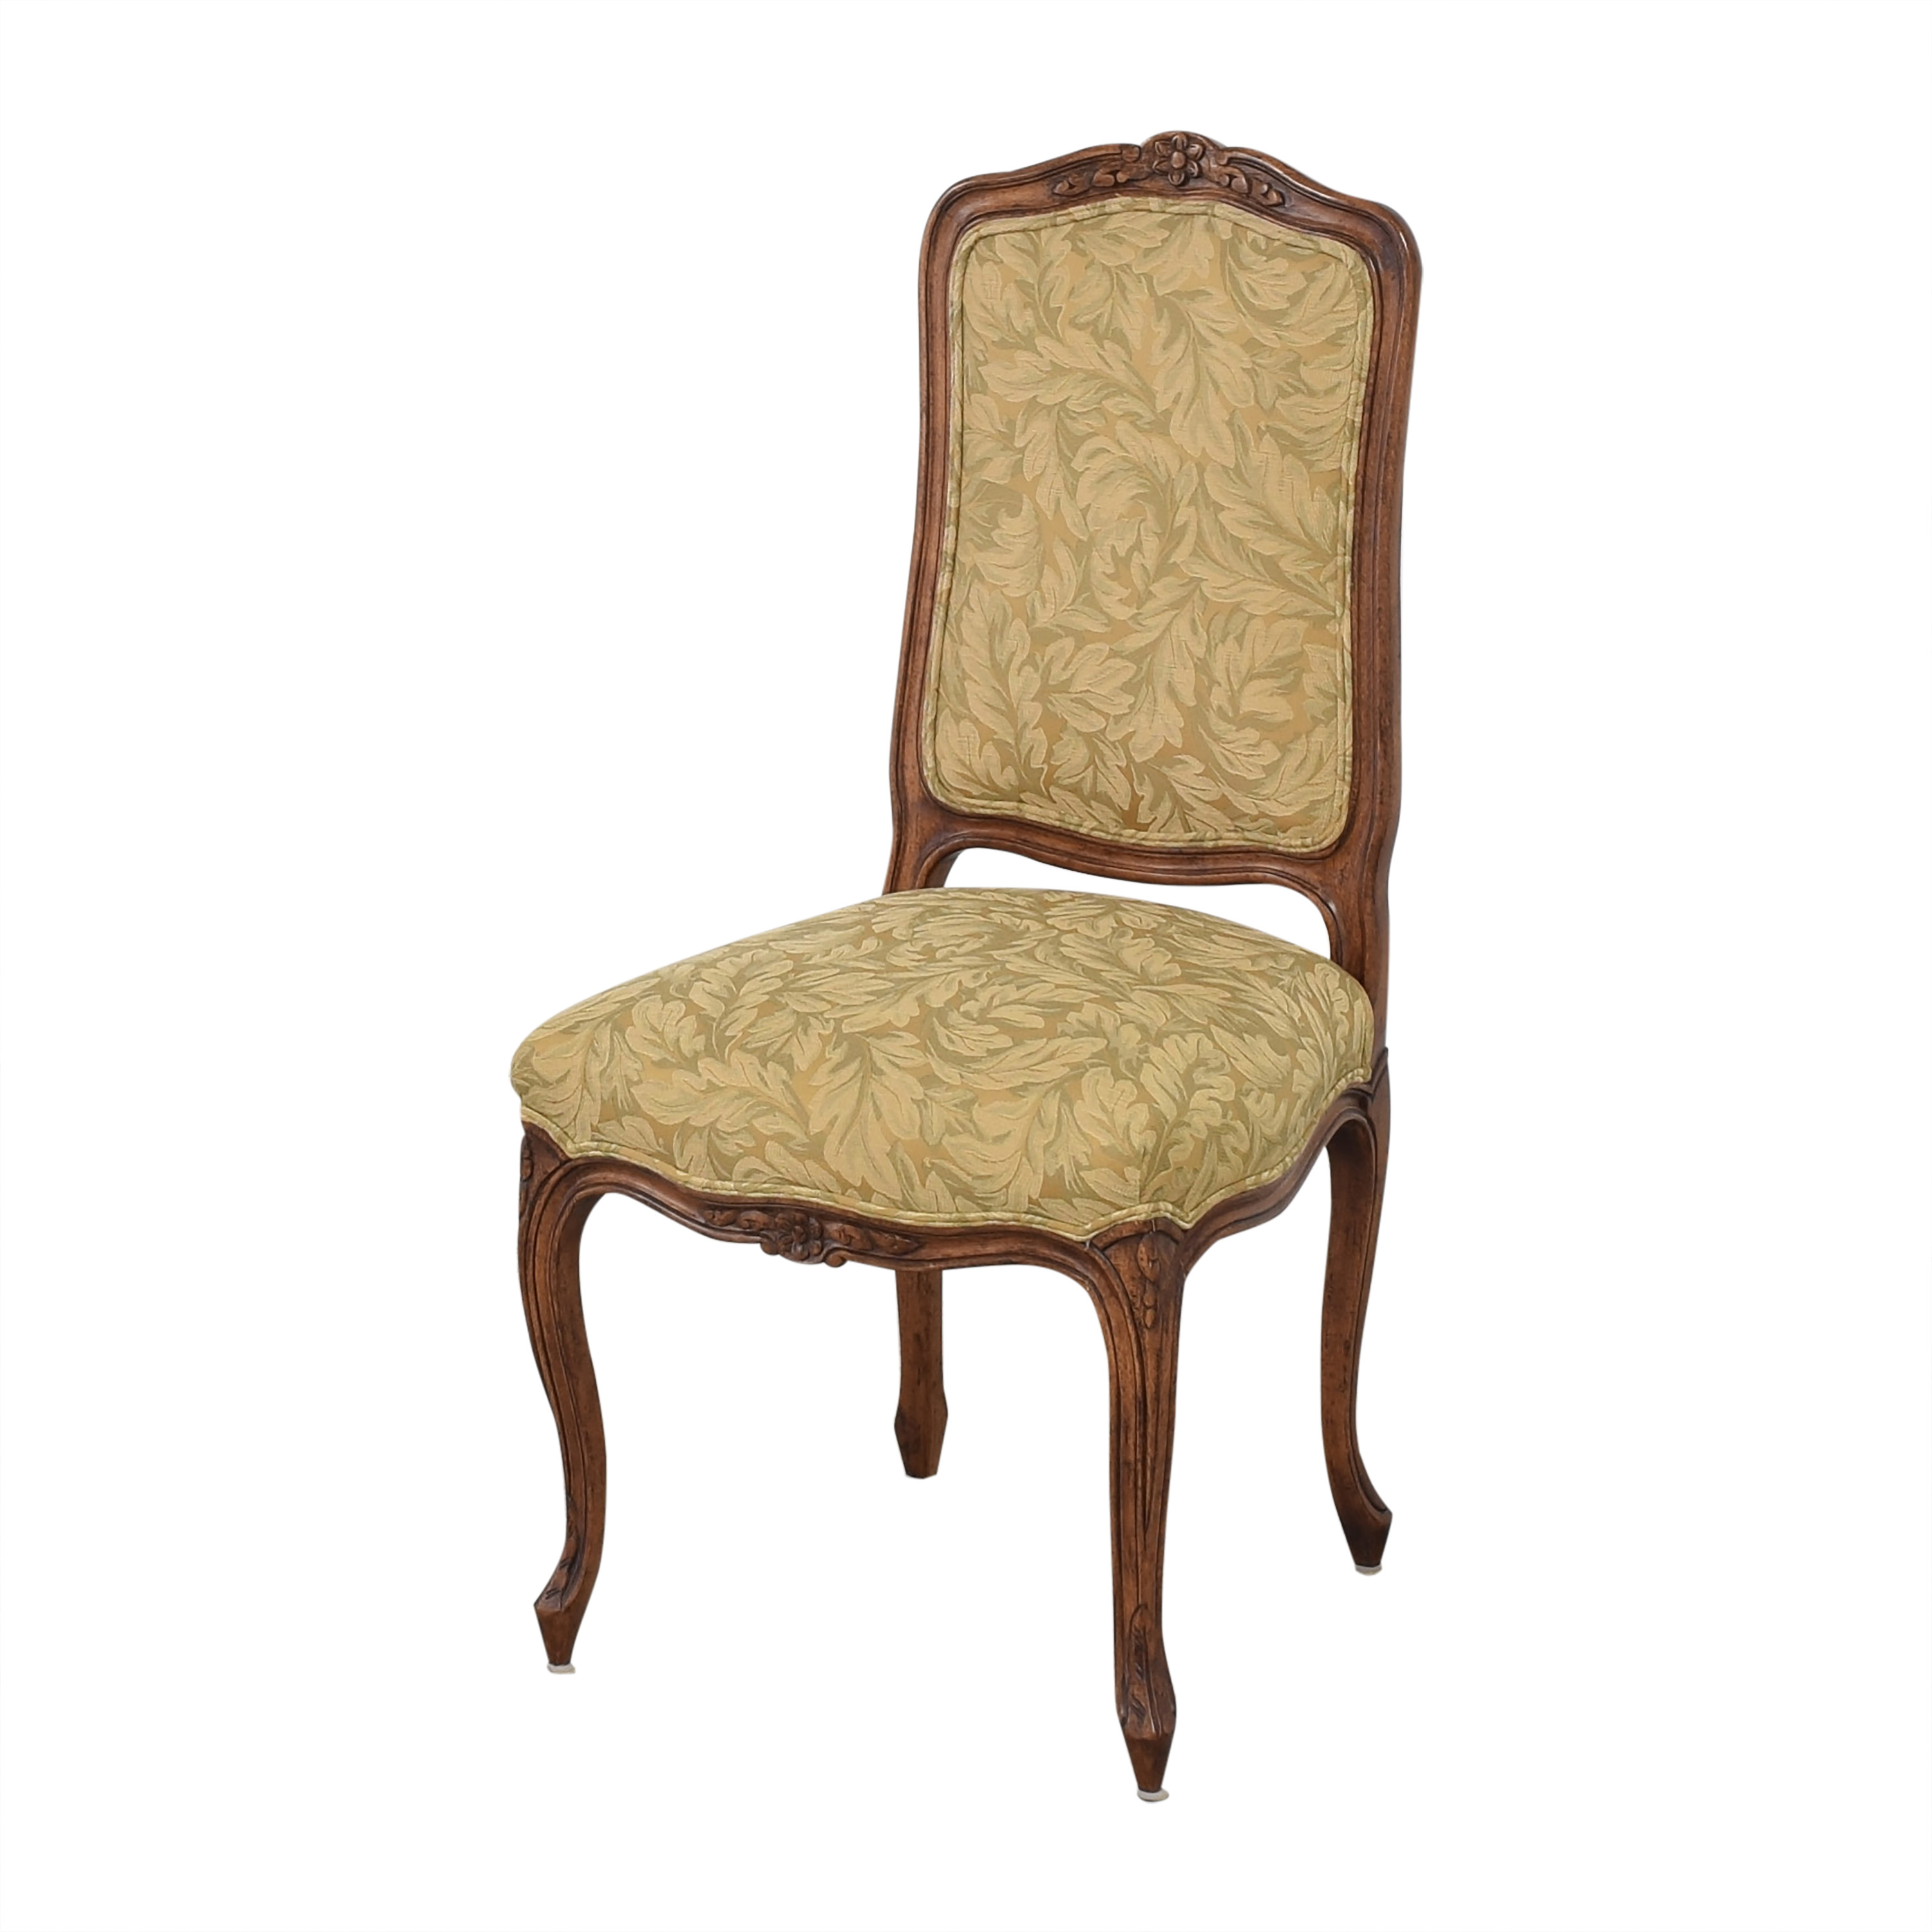 Fremarc Designs Fremarc Designs Carved Upholstered Dining Chairs Chairs